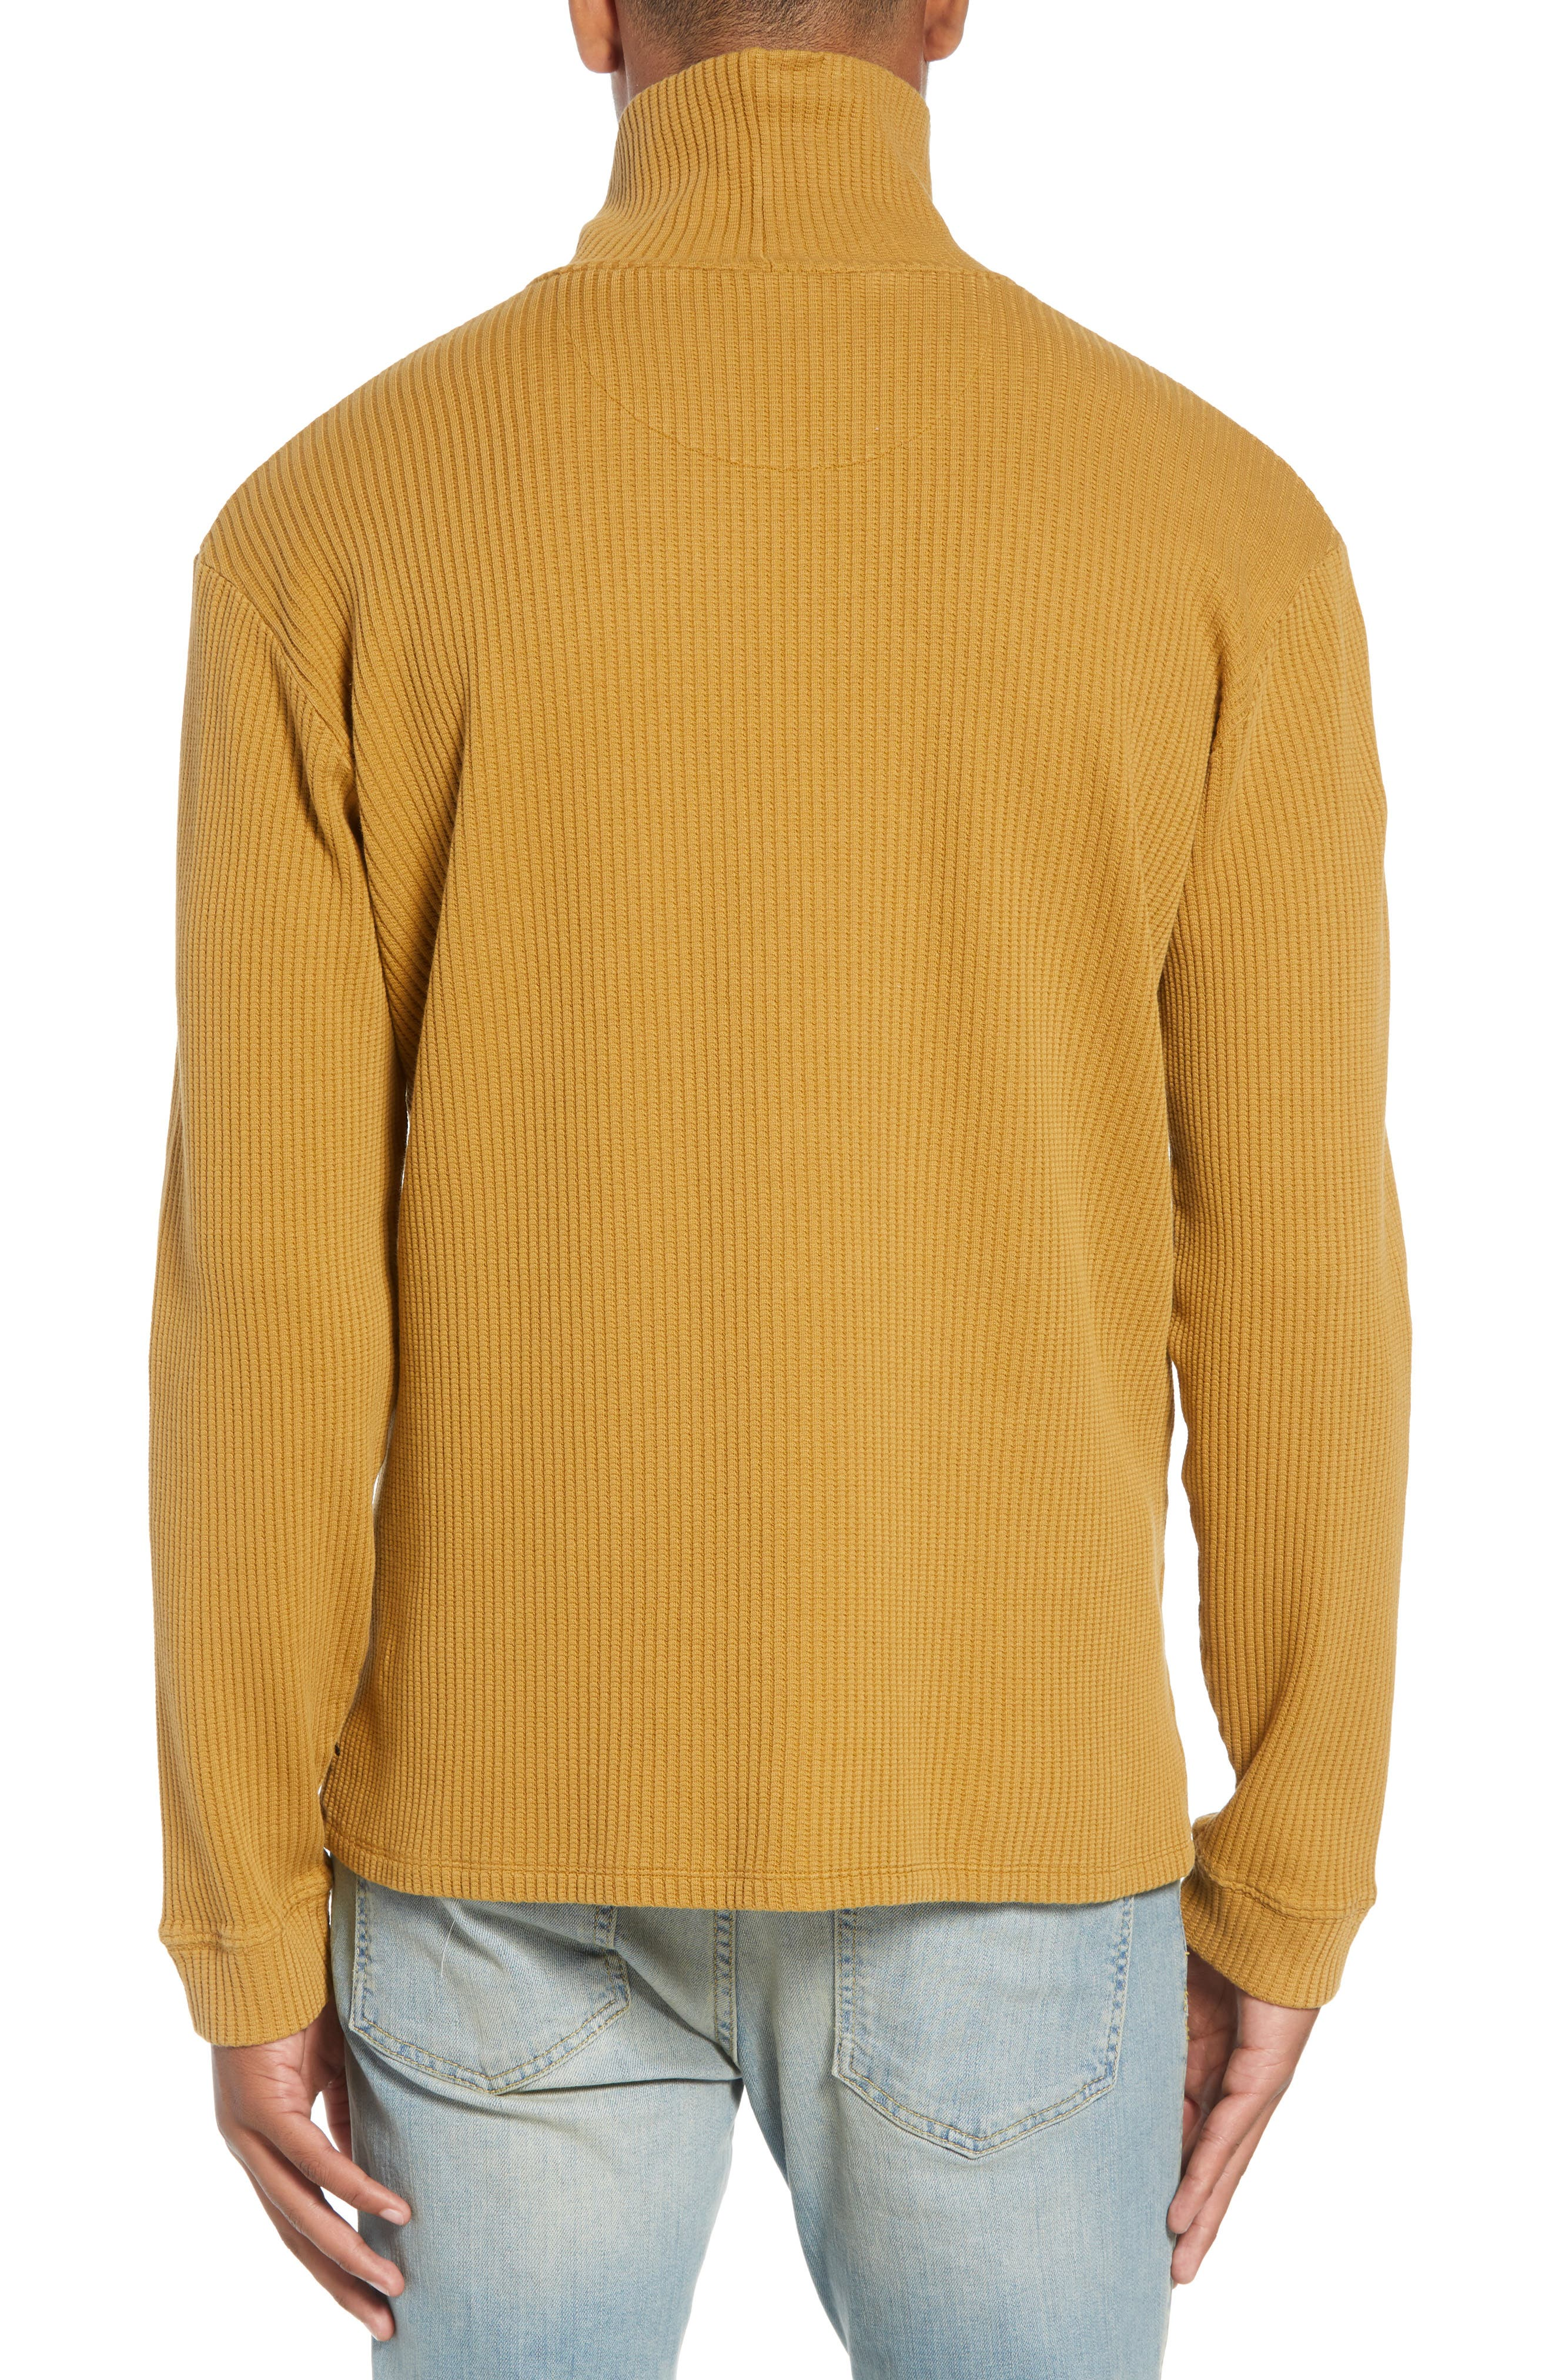 Henrik Turtleneck Sweater,                             Alternate thumbnail 2, color,                             BURNT KHAKI